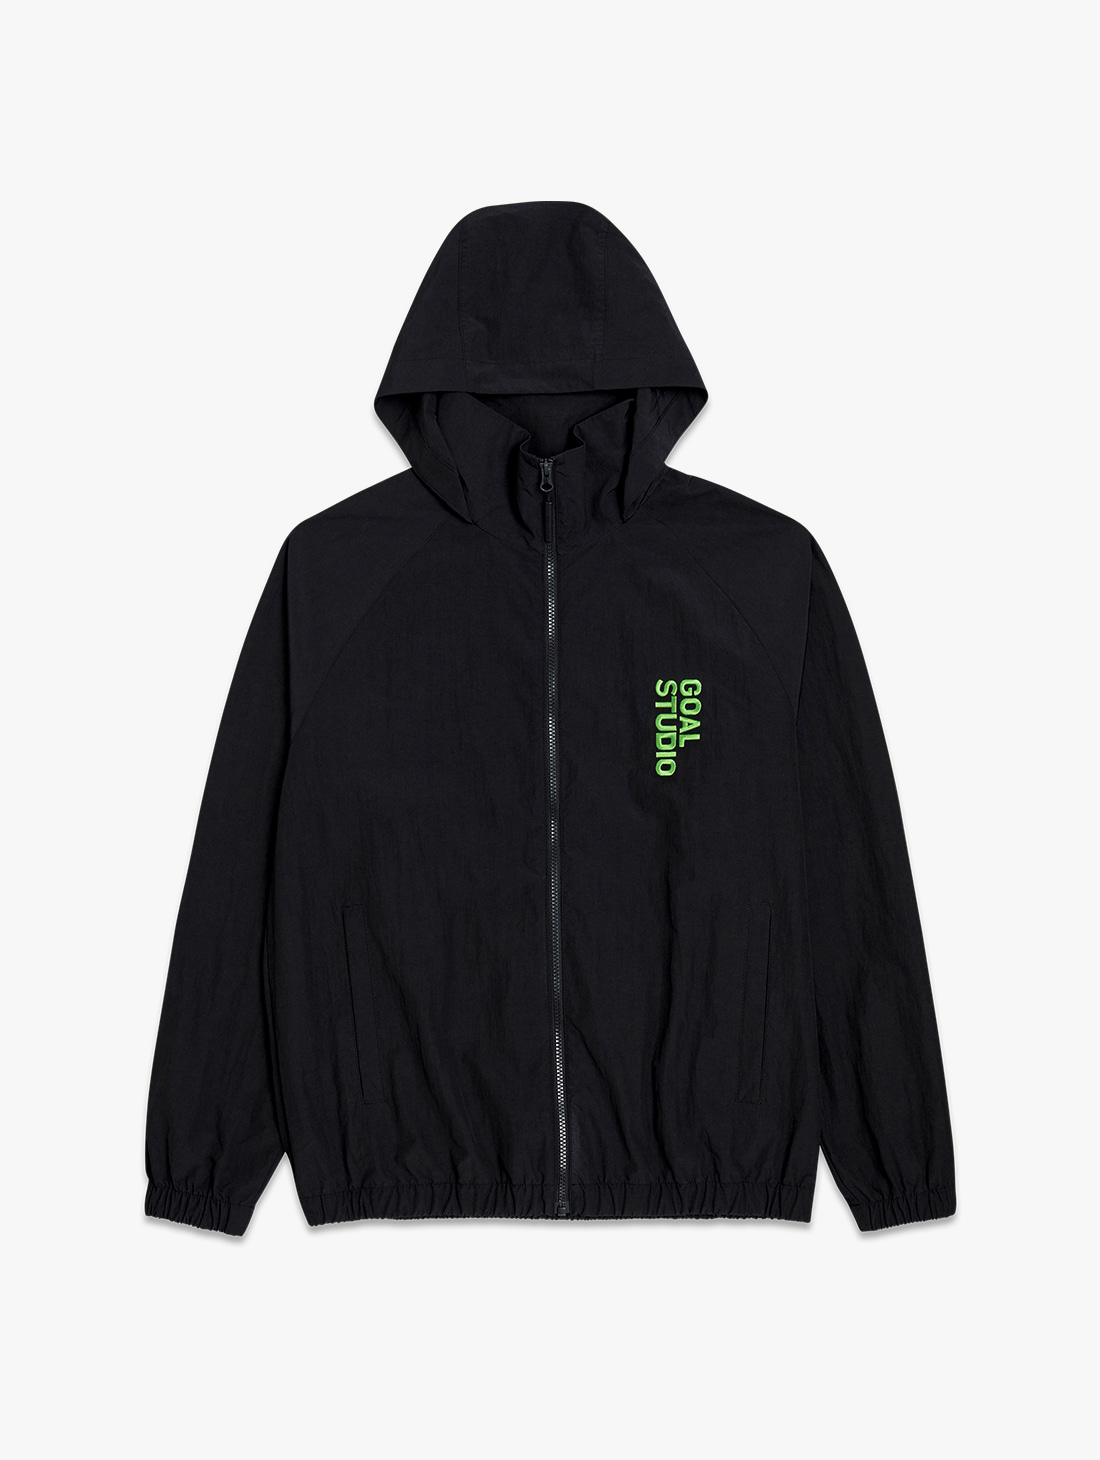 NYLON BLEND WIND BREAKER (2 Colors)